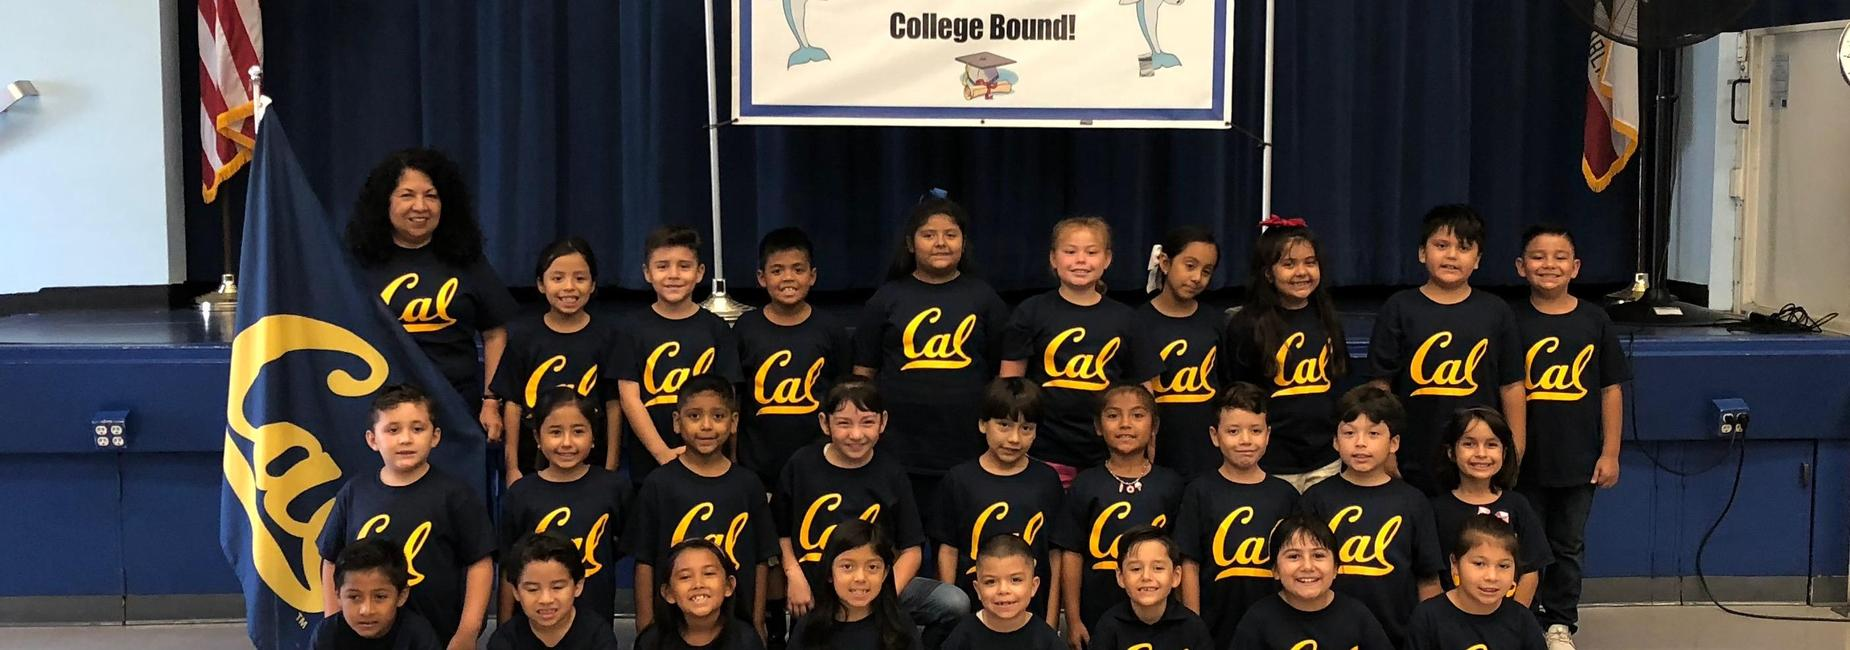 Students with Cal College Shirts